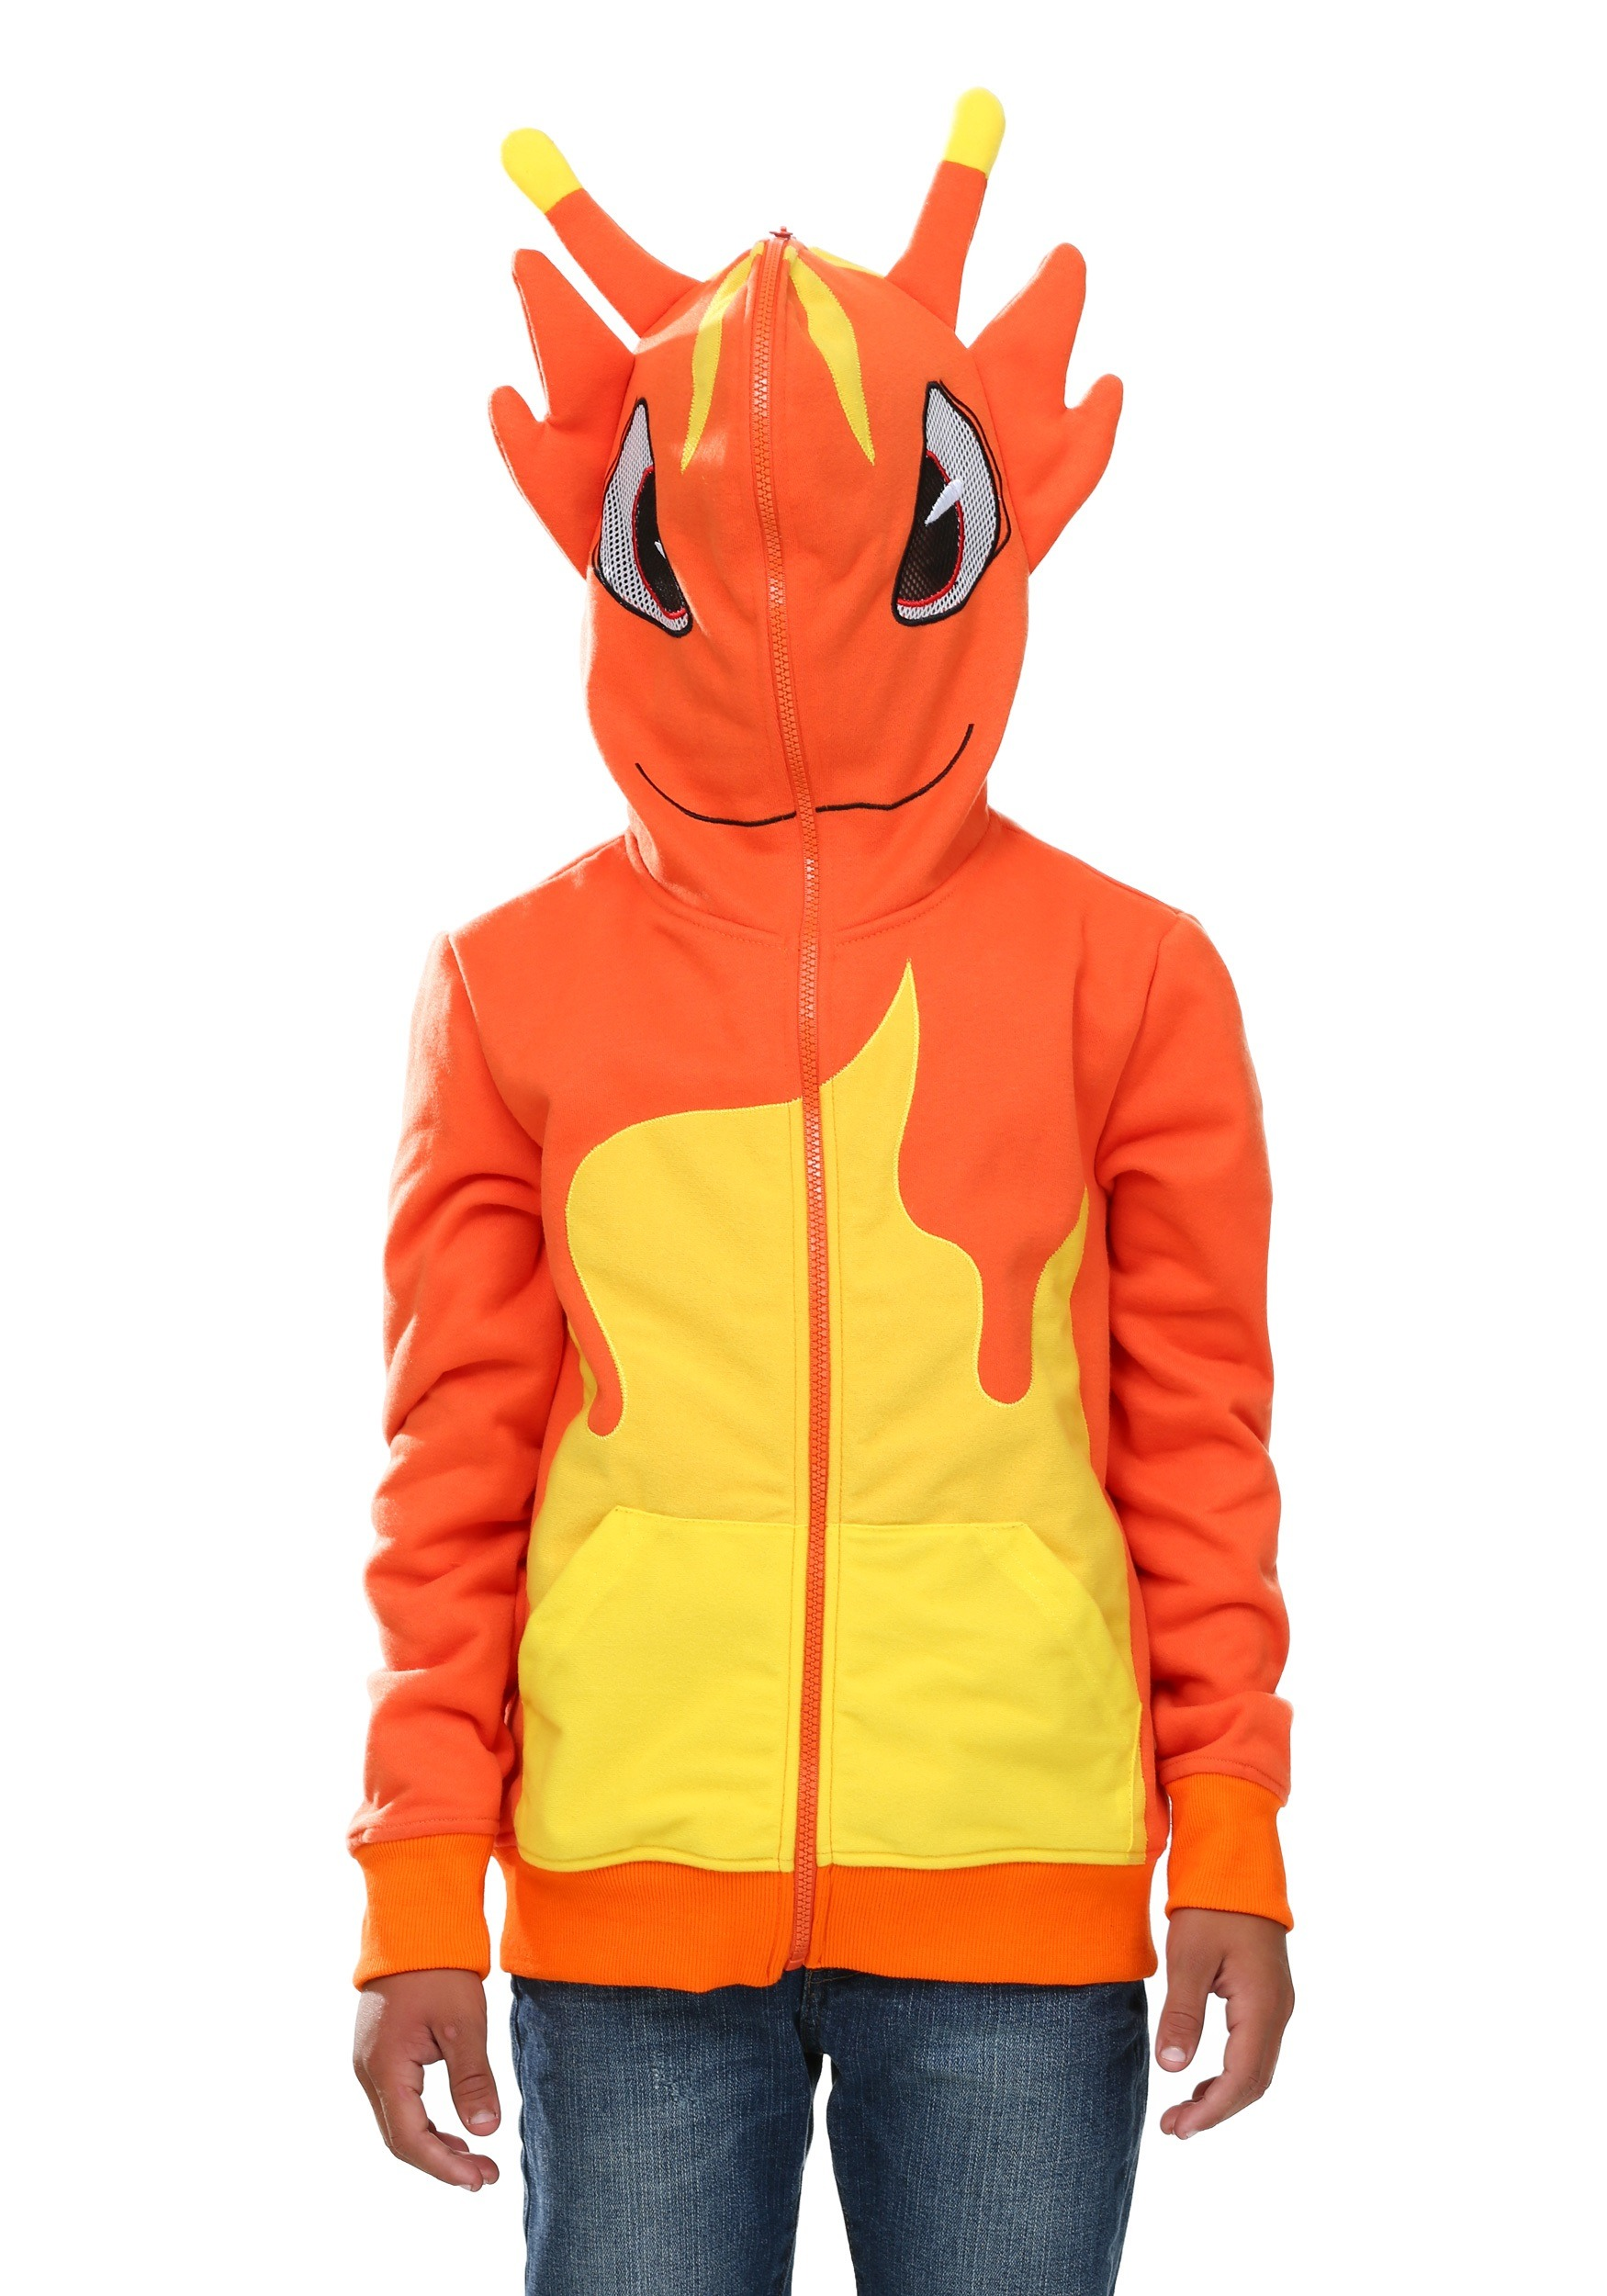 Fun Lamps Kids Slugterra Hooded Sweatshirt